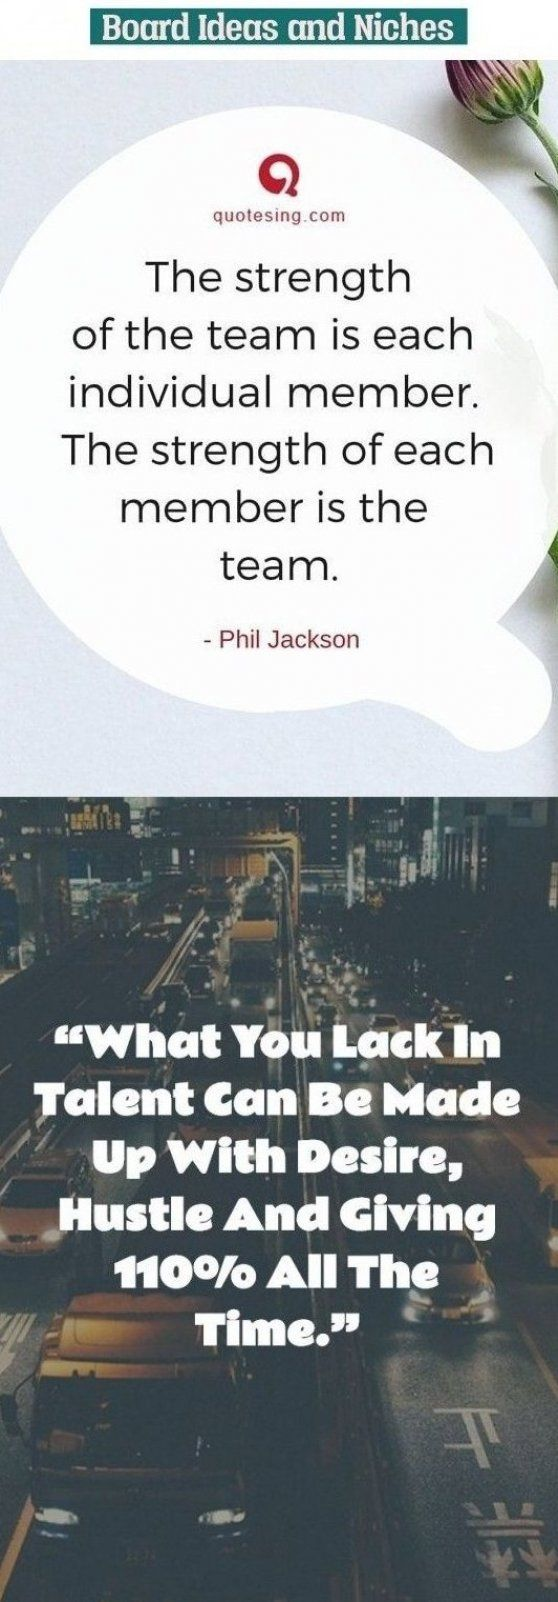 Teamwork Quotes For Work Successquotes Seotips Seo Quotes Teamwork Quotes Motiv In 2020 Teamwork Quotes Motivational Best Teamwork Quotes Teamwork Quotes For Work